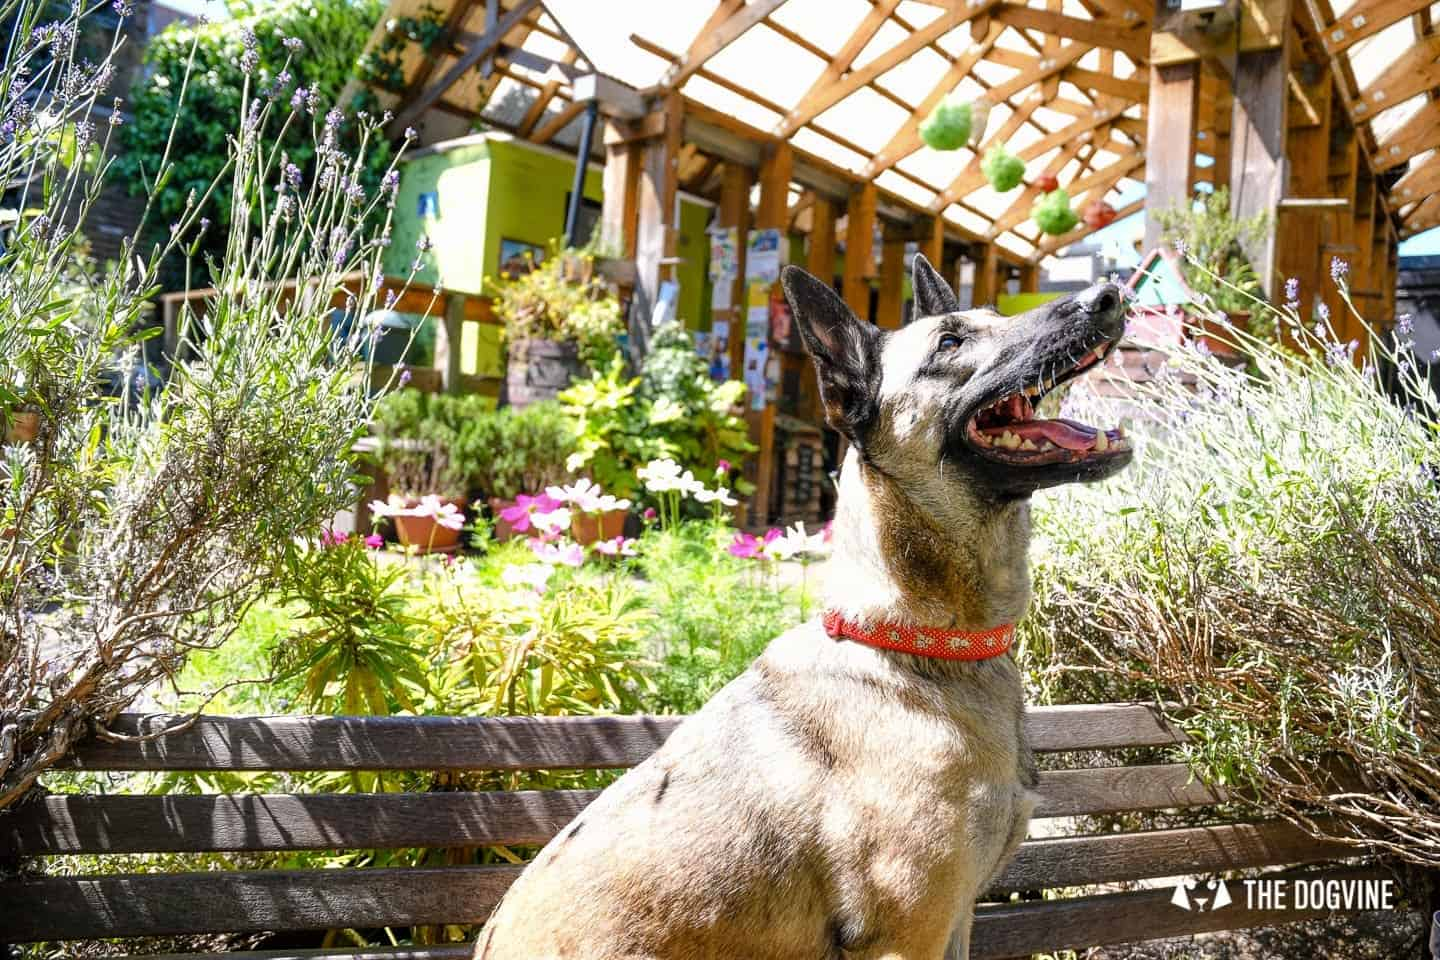 My Dog Friendly London By Lyra the Malinois - Dog Friendly Dalston and Hackney 14